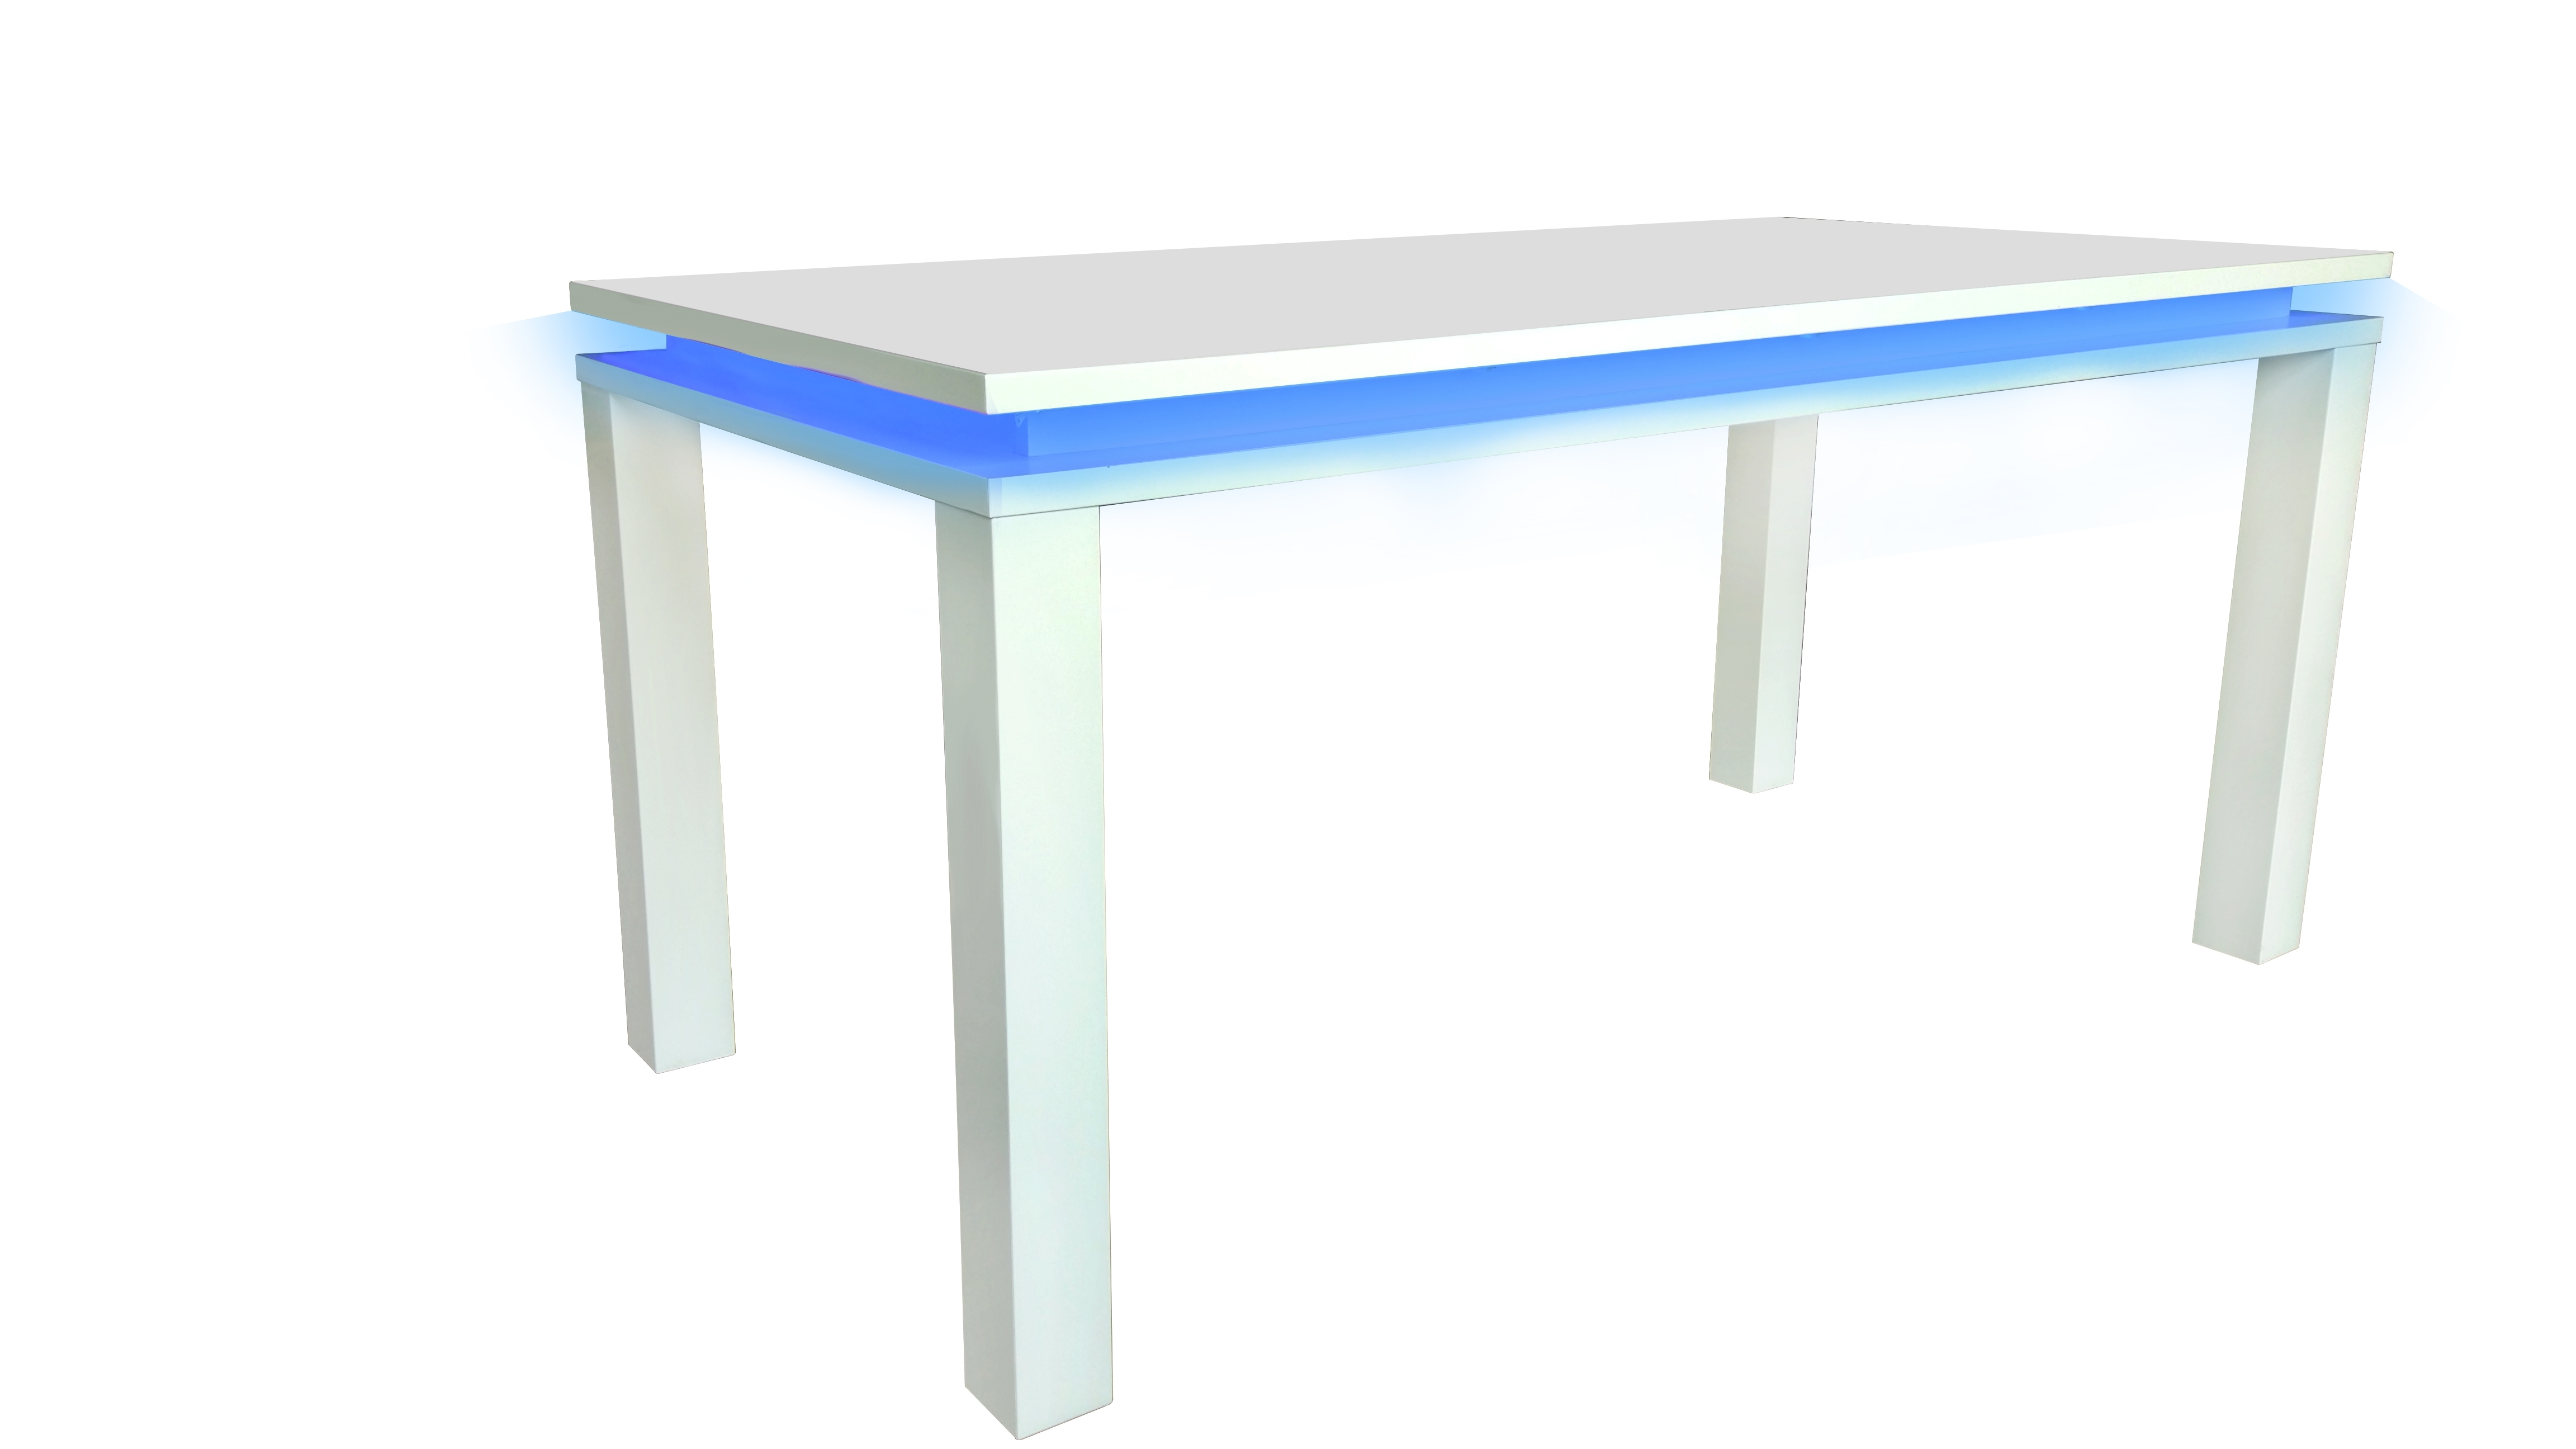 White High Gloss Dining Tables Within 2017 Milano High Gloss Modern Dining Room Table – White Gloss With Blue (View 25 of 25)